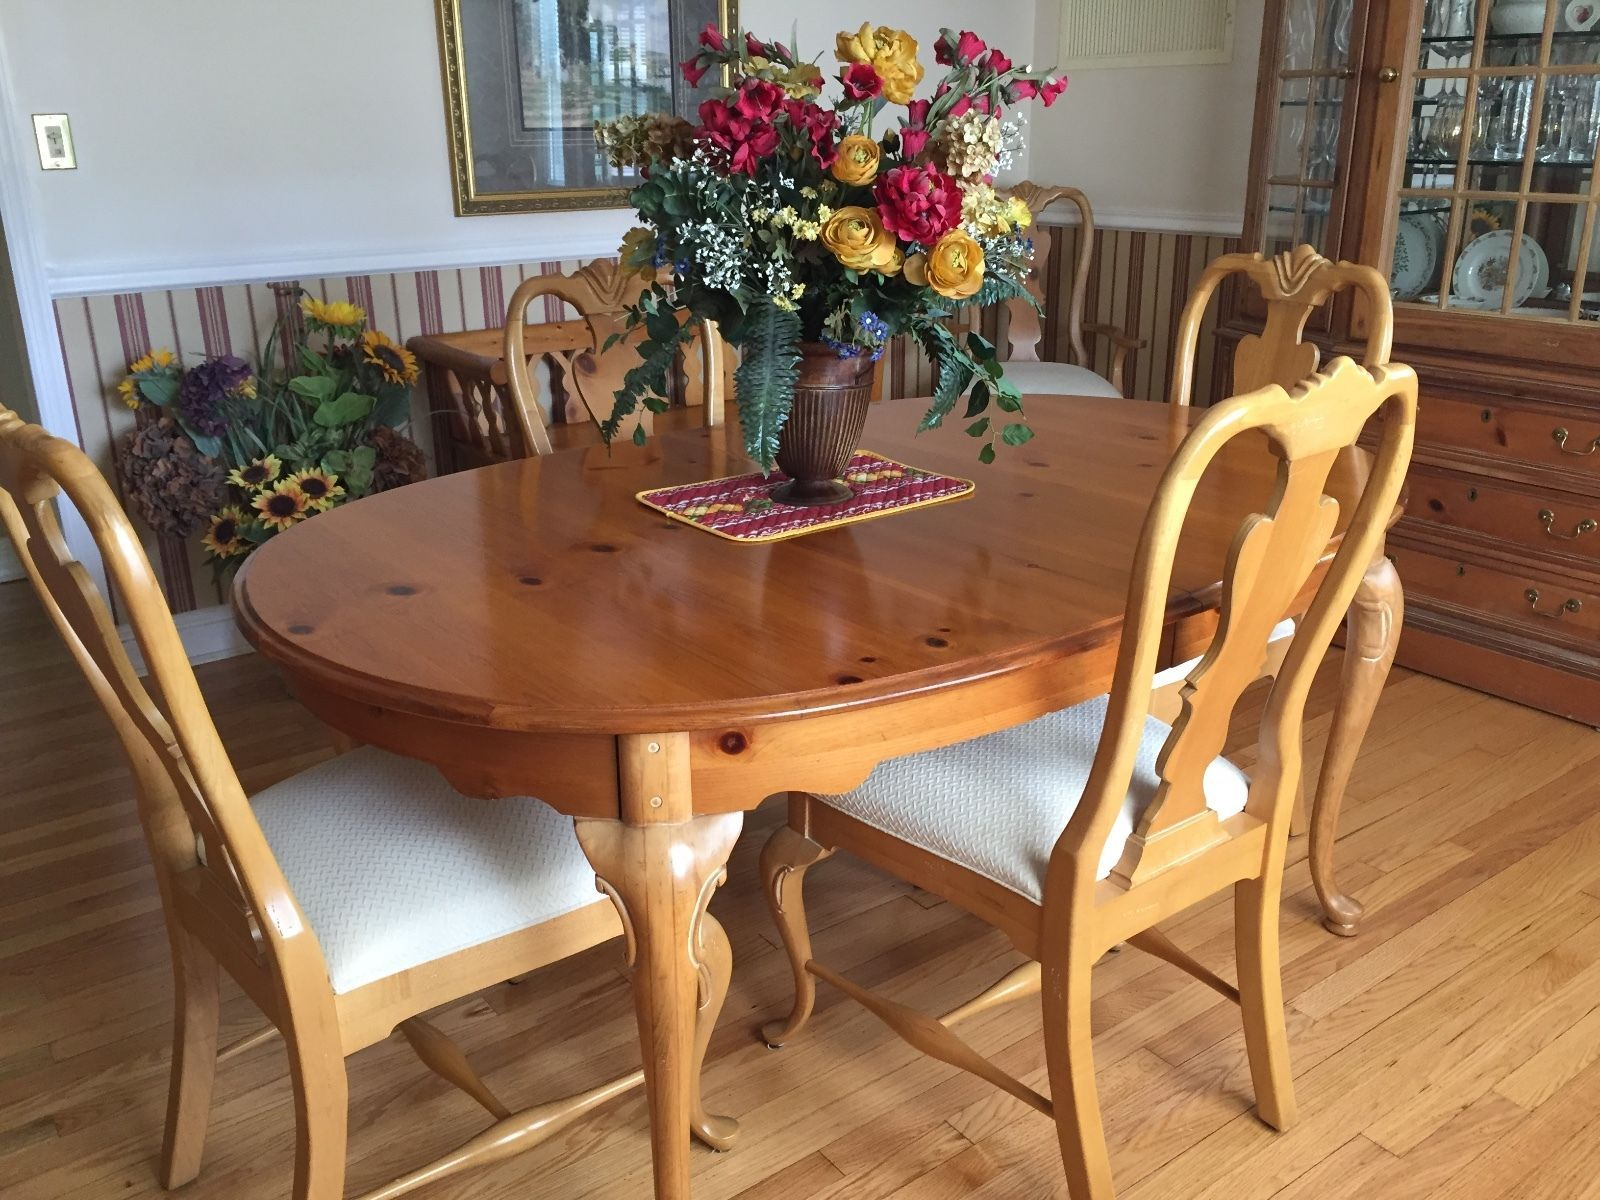 Thomasville Replica 1800 Dining Table And Chairs With China